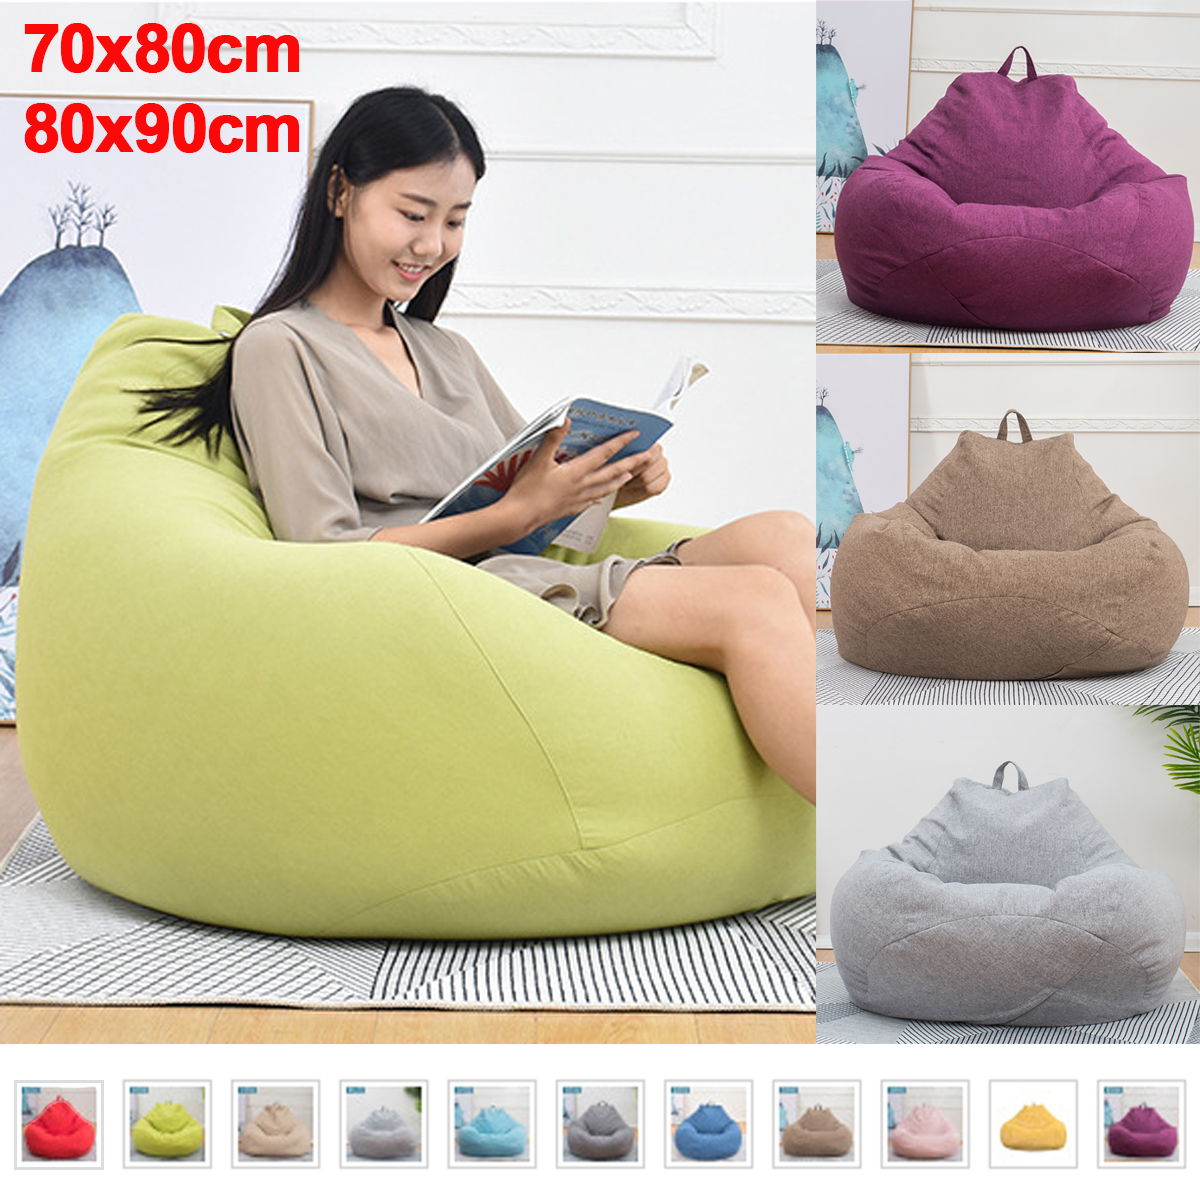 Astonishing Details About Uk Large Bean Bag Chair Sofa Couch Cover Indoor Lazy Lounger For Adults Creativecarmelina Interior Chair Design Creativecarmelinacom